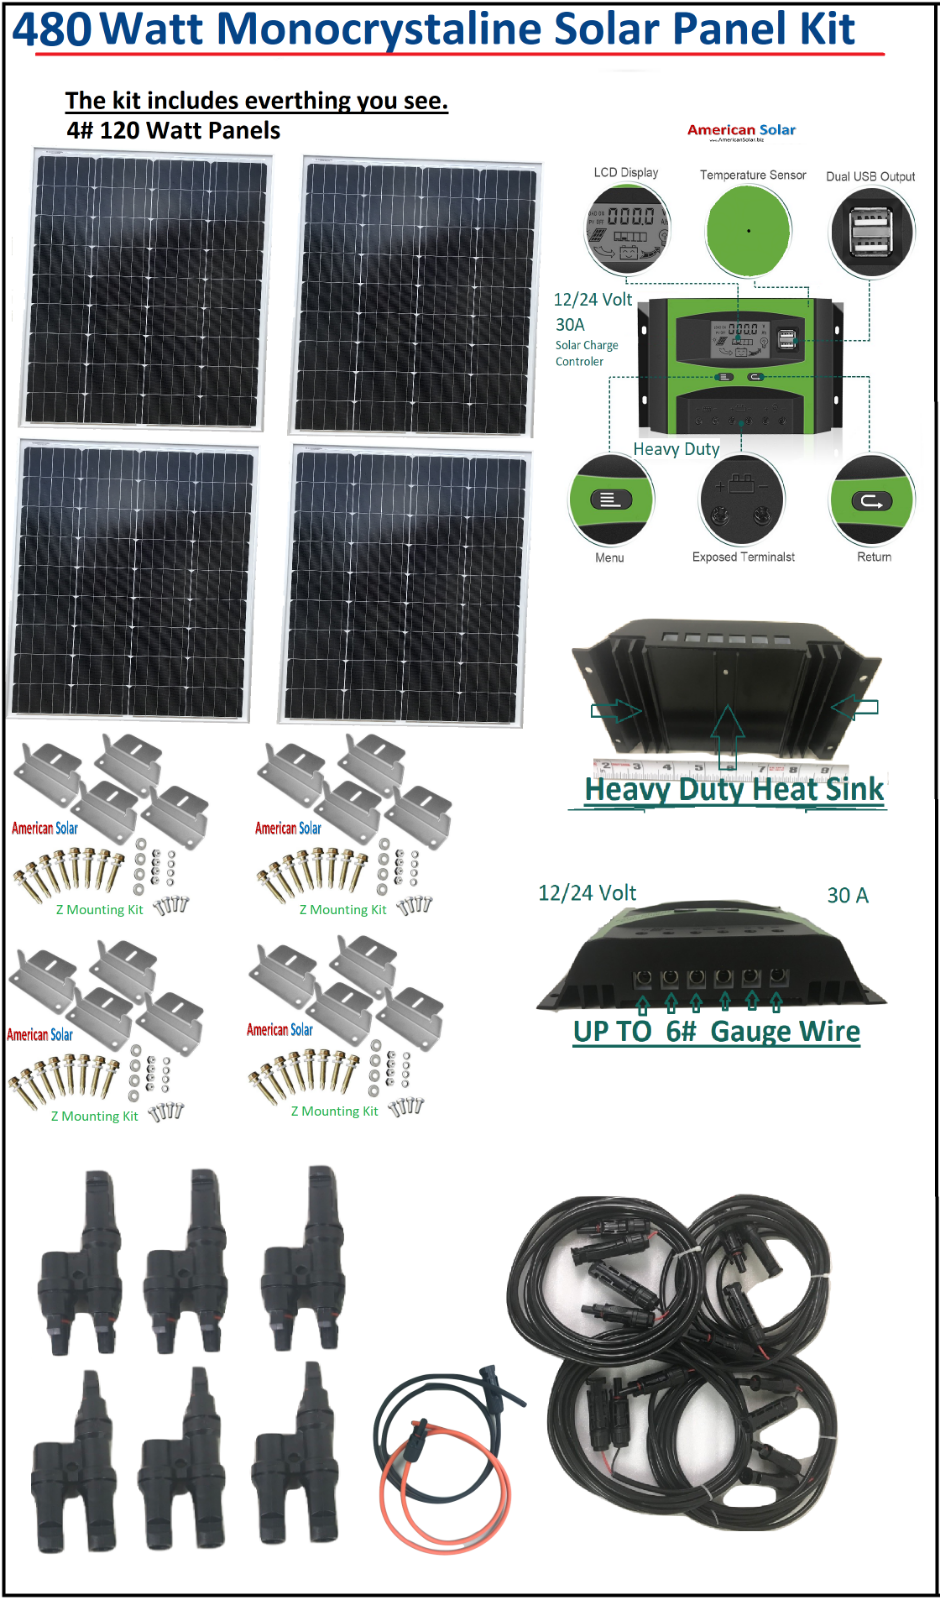 4  # Monocrystalline 4# Sets of Z brackets 6 # MC4 branch connectors. 1# Pair of MC4 cables  4# Sets 12 foot copper 2/16 gauge MC4 connectors 1# American Solar AM30A PWM 30A Solar charge